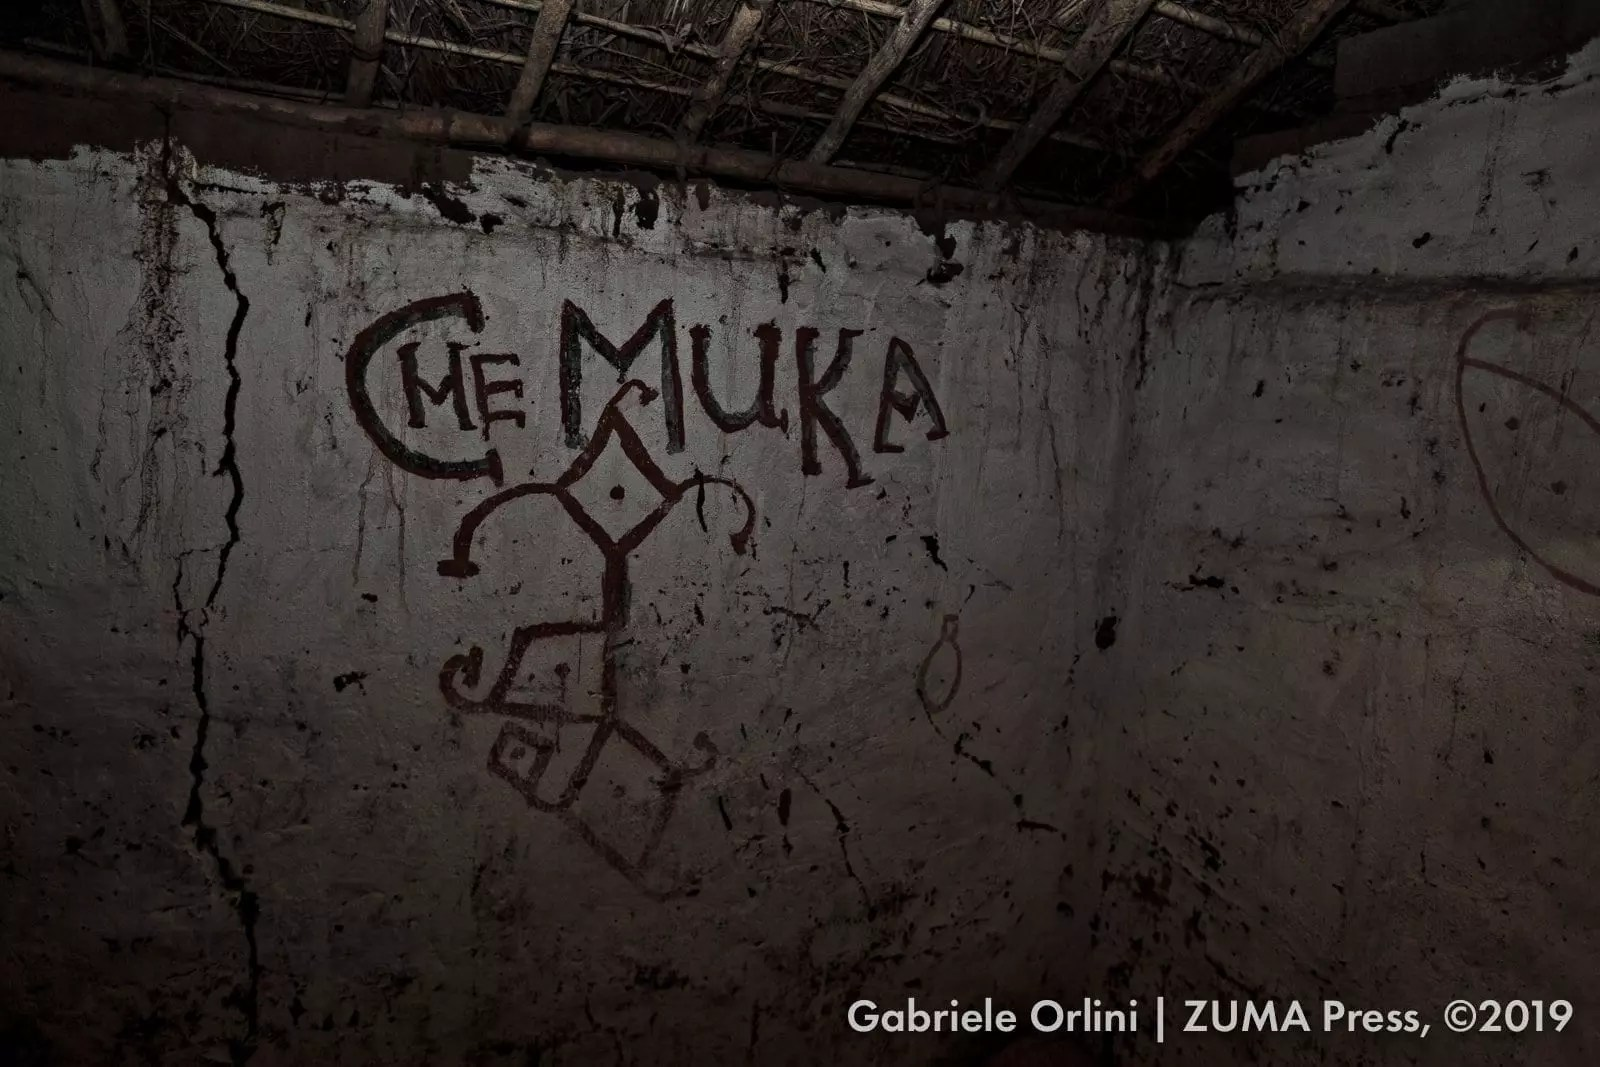 Mganga Woodo | Gabriele Orlini, ZUMA Press, ©2019